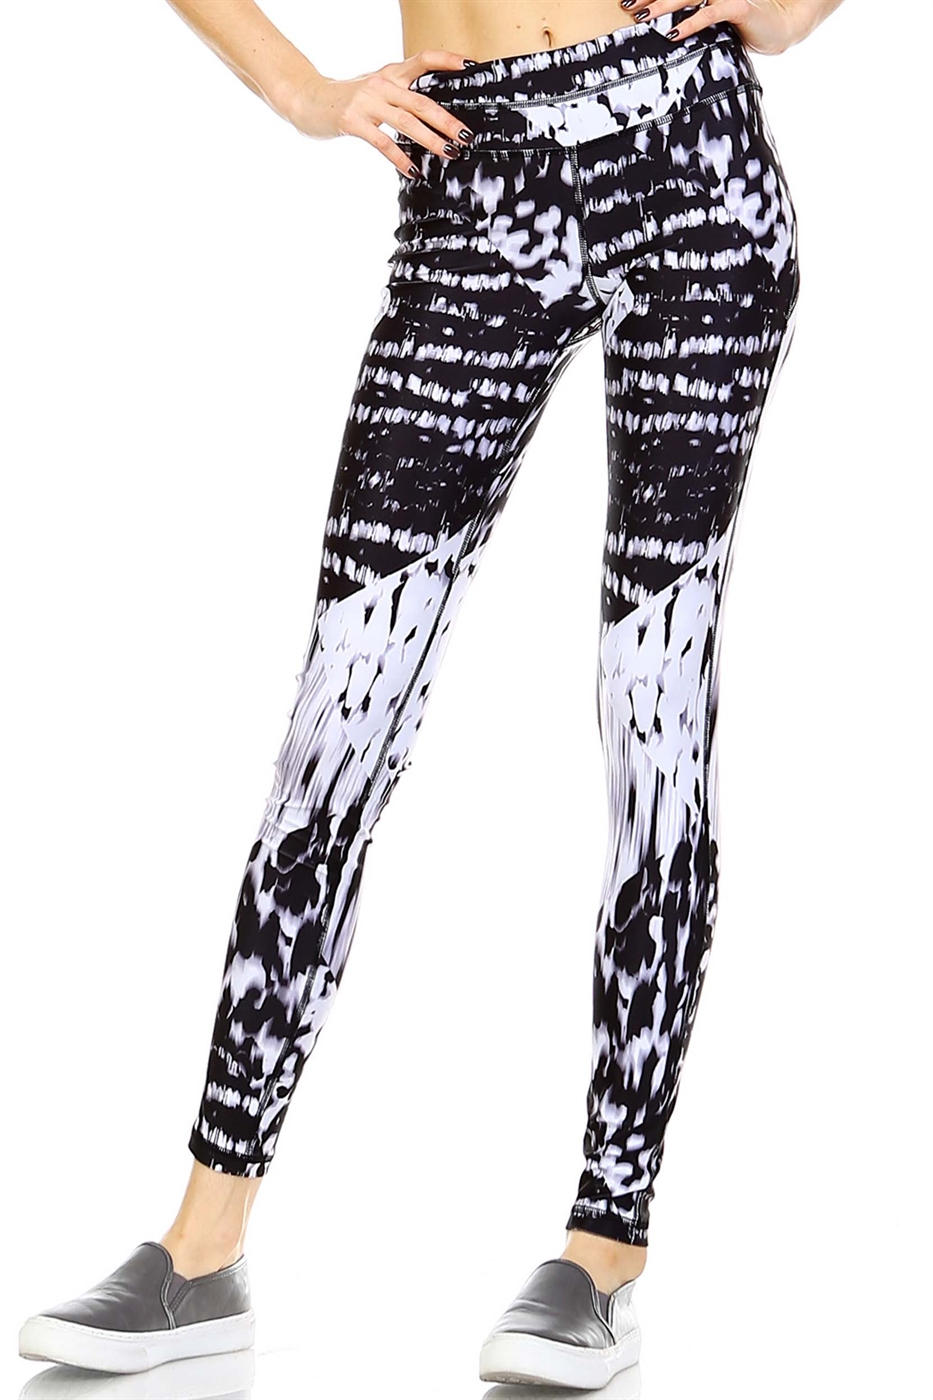 CONTRAST PANEL LEGGINGS - orangeshine.com